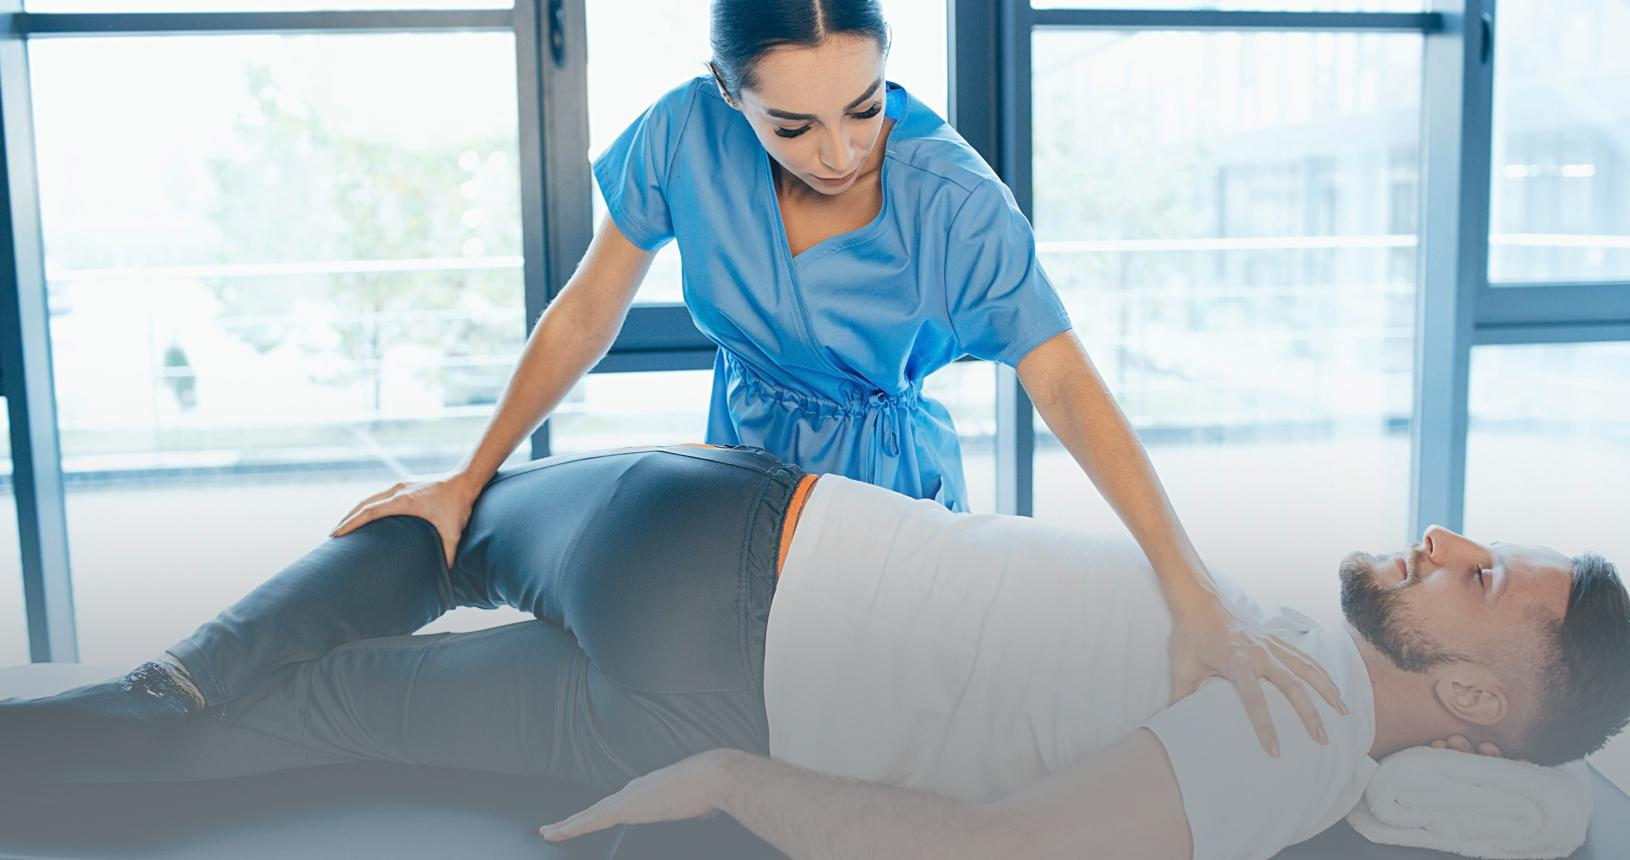 10 Things You Should Know Before Seeing A Physical Therapist